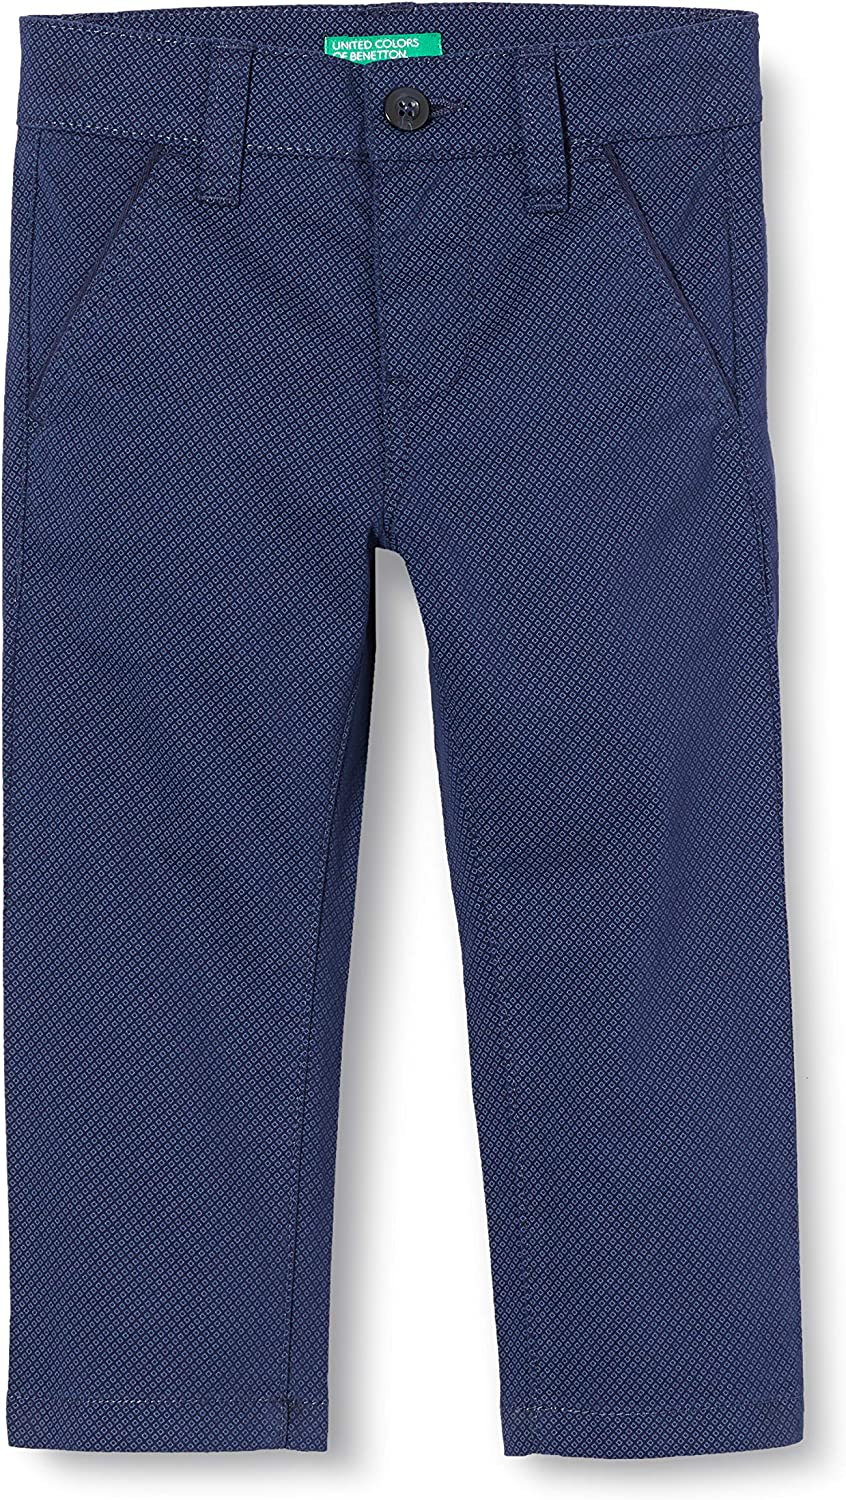 United Colors of Benetton Baby Boys Trouser